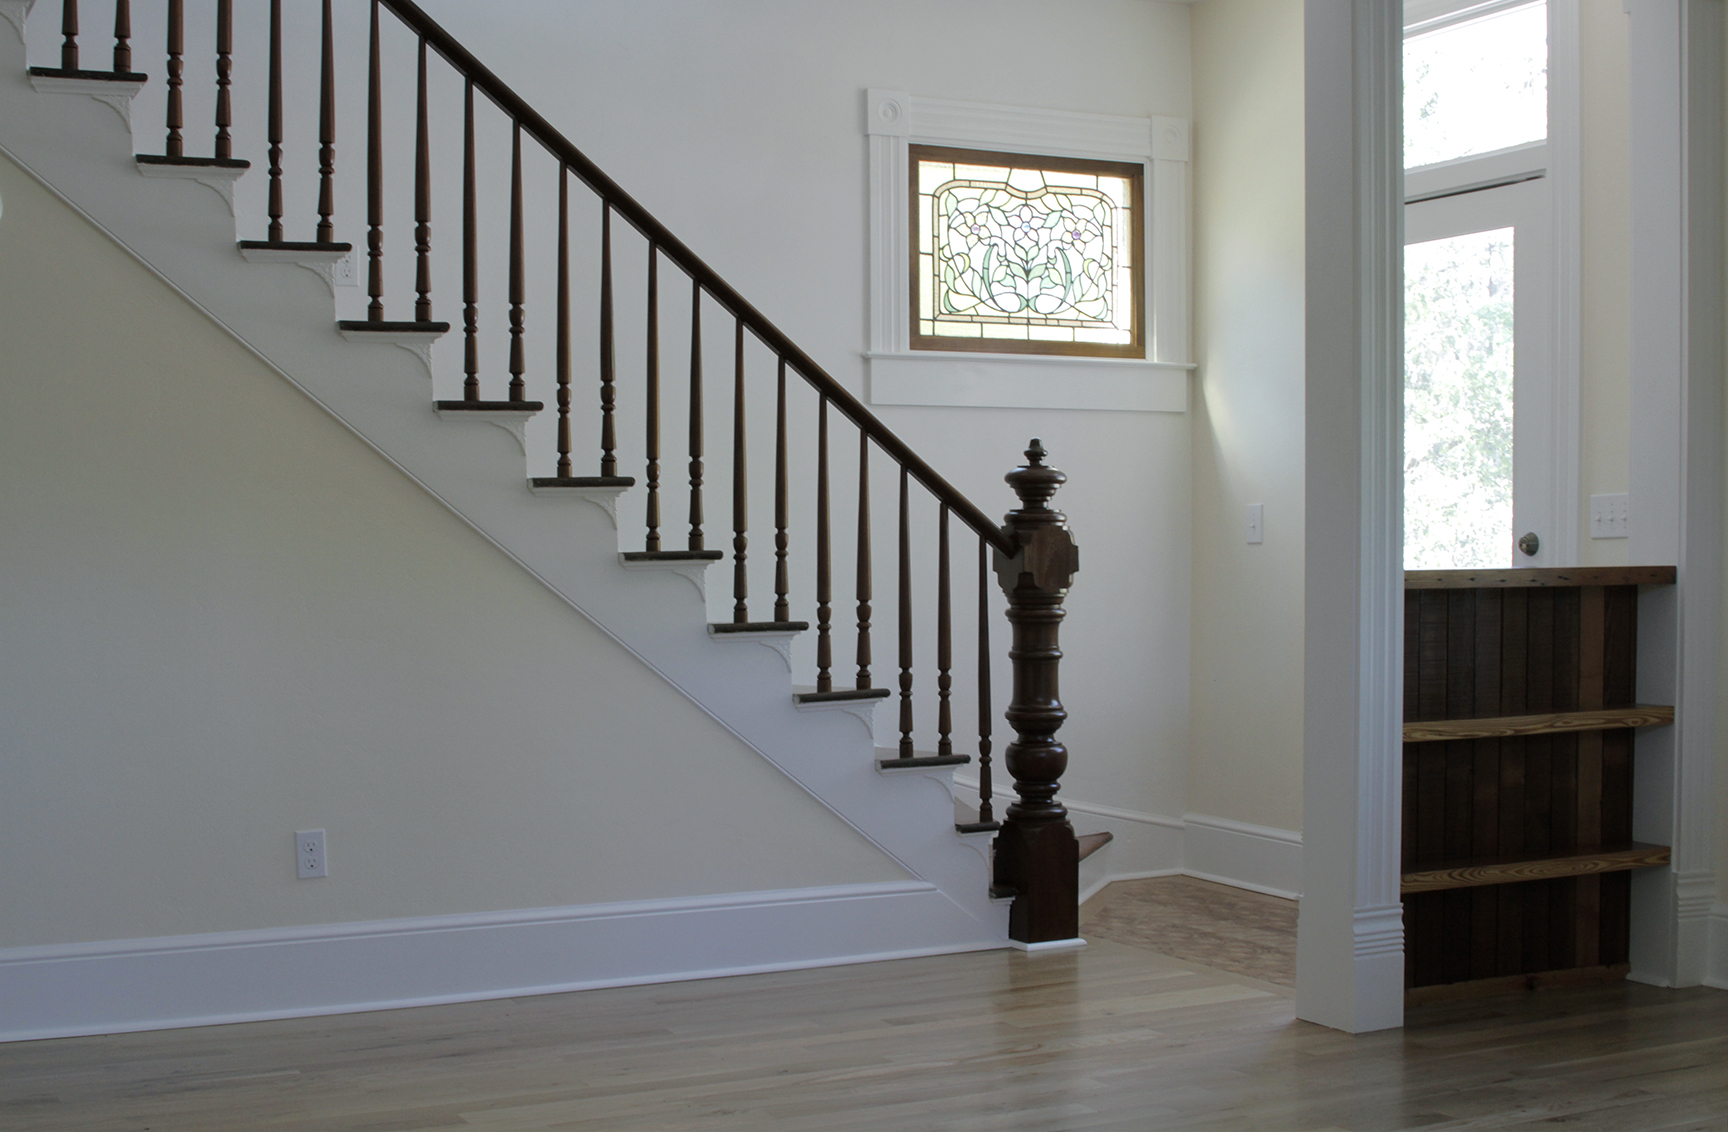 Stairs-Foyer-2-large.jpg